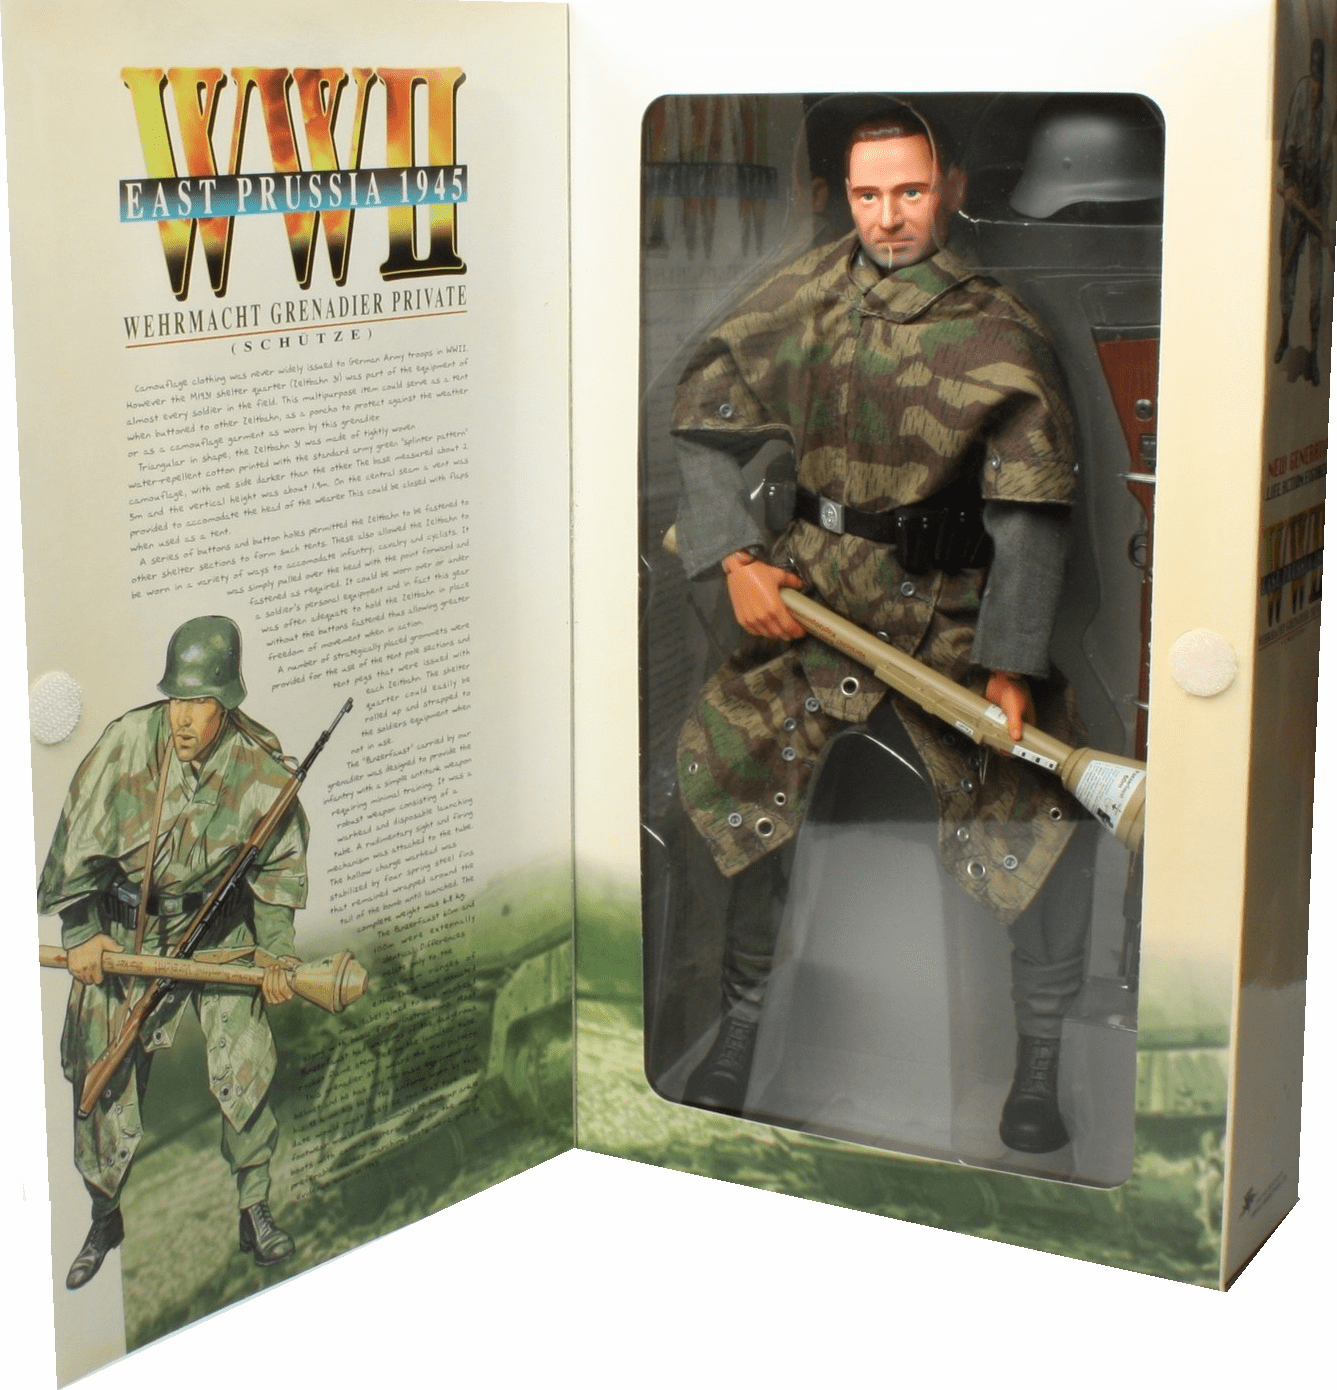 Dragon WWII East Prussia 1945 Wehrmacht Grenadier Private Wolf Figure